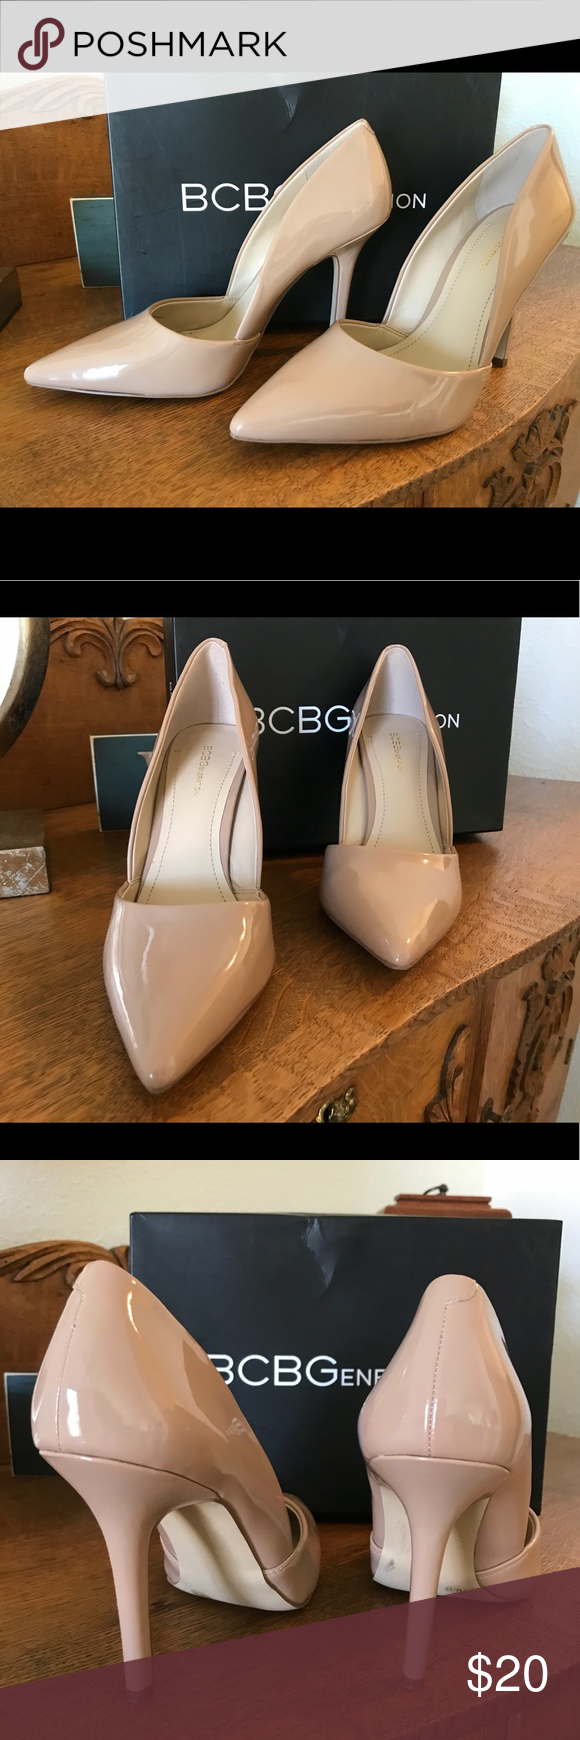 fbf17f1dd00 BCBGeneration Nude Pumps BCBGeneration Damia patent nude pump in excellent  condition. Never worn. BCBGeneration